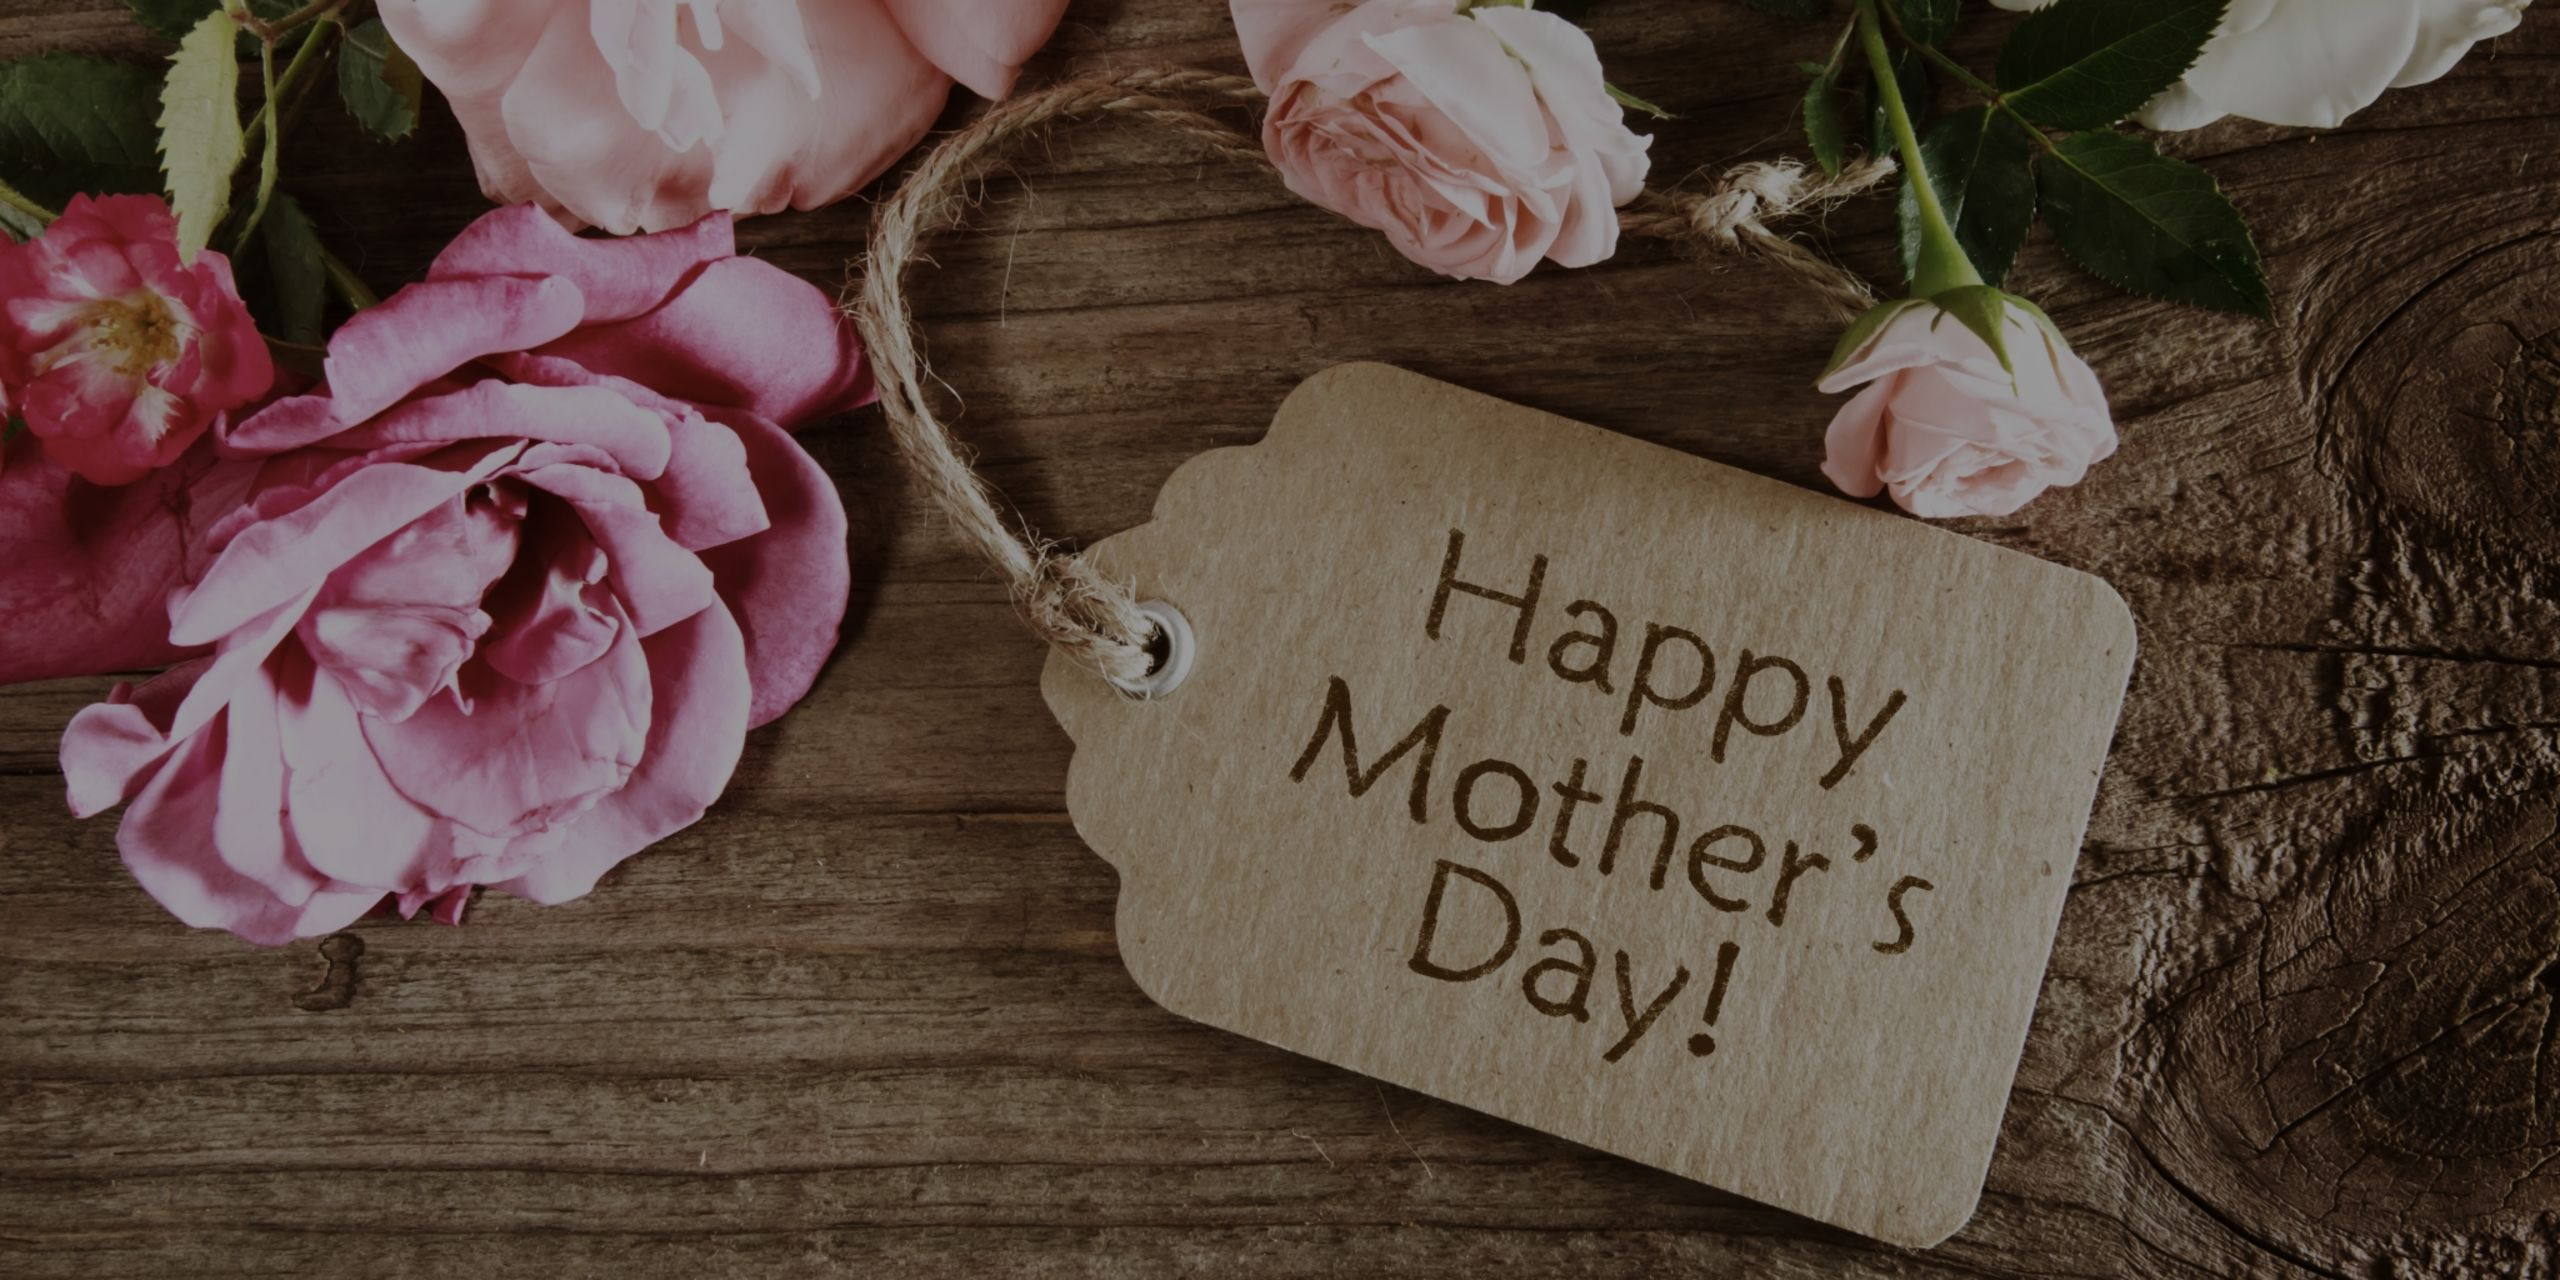 Need meaningful ideas for Mother's Day?